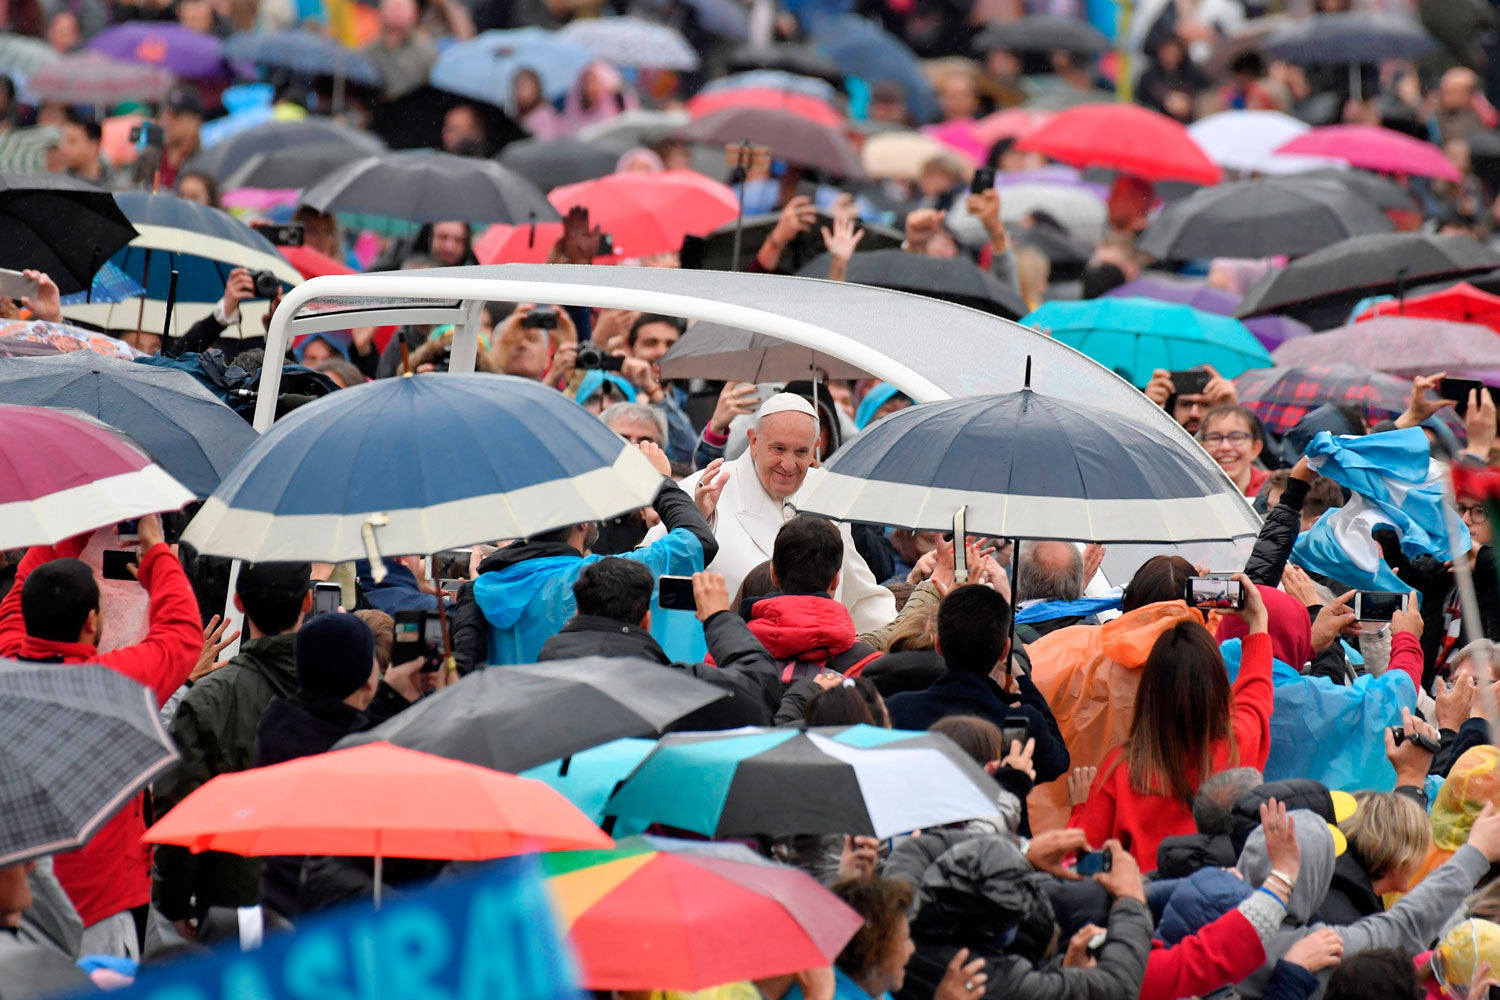 Pope Francis greets the crowd in the rain as he arrives for a weekly general audience at St. Peter's Square on April 4 in Vatican City. (Tiziana Fabi/AFP/Getty Images)